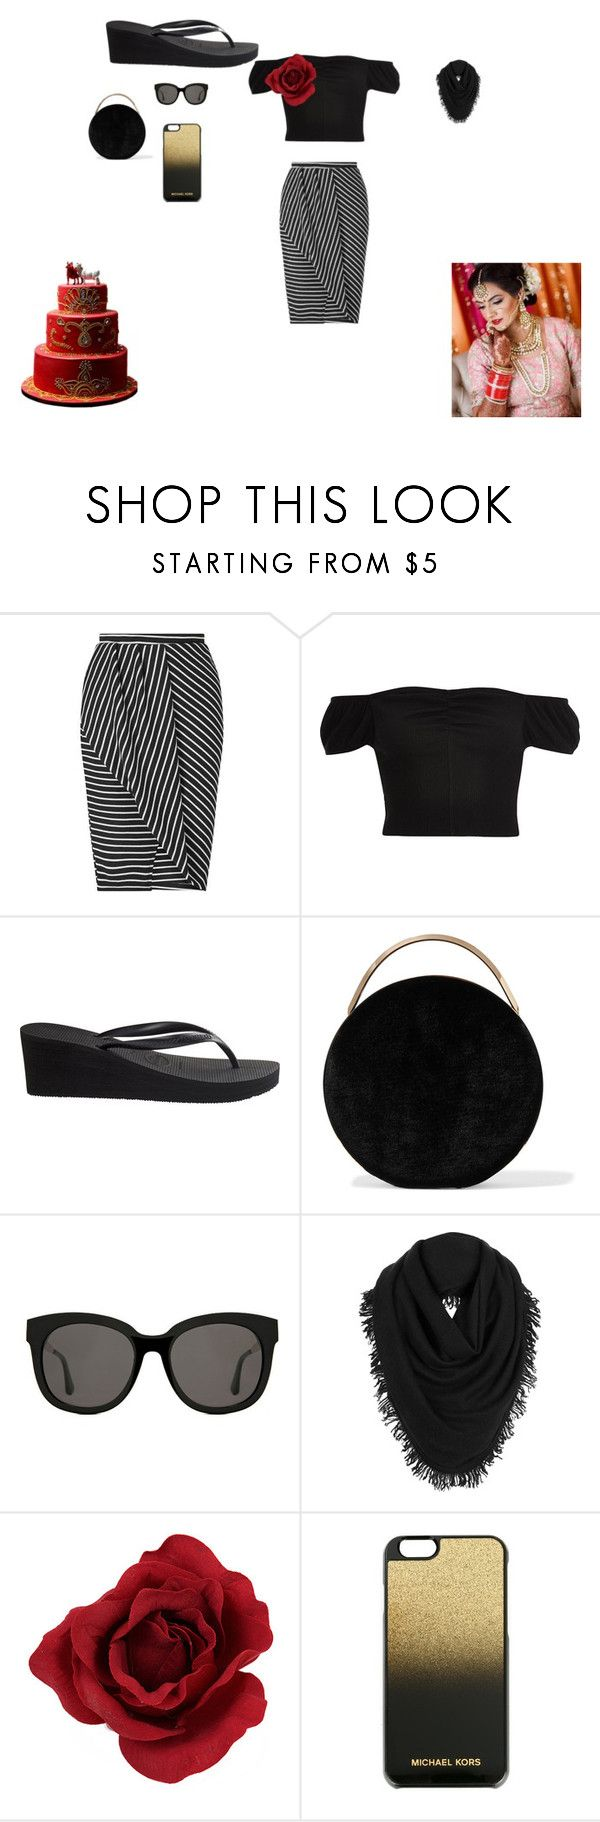 """""""Indian outfit"""" by allison-orth ❤ liked on Polyvore featuring Miss Selfridge, River Island, Havaianas, Eddie Borgo, Gentle Monster, White + Warren and MICHAEL Michael Kors"""